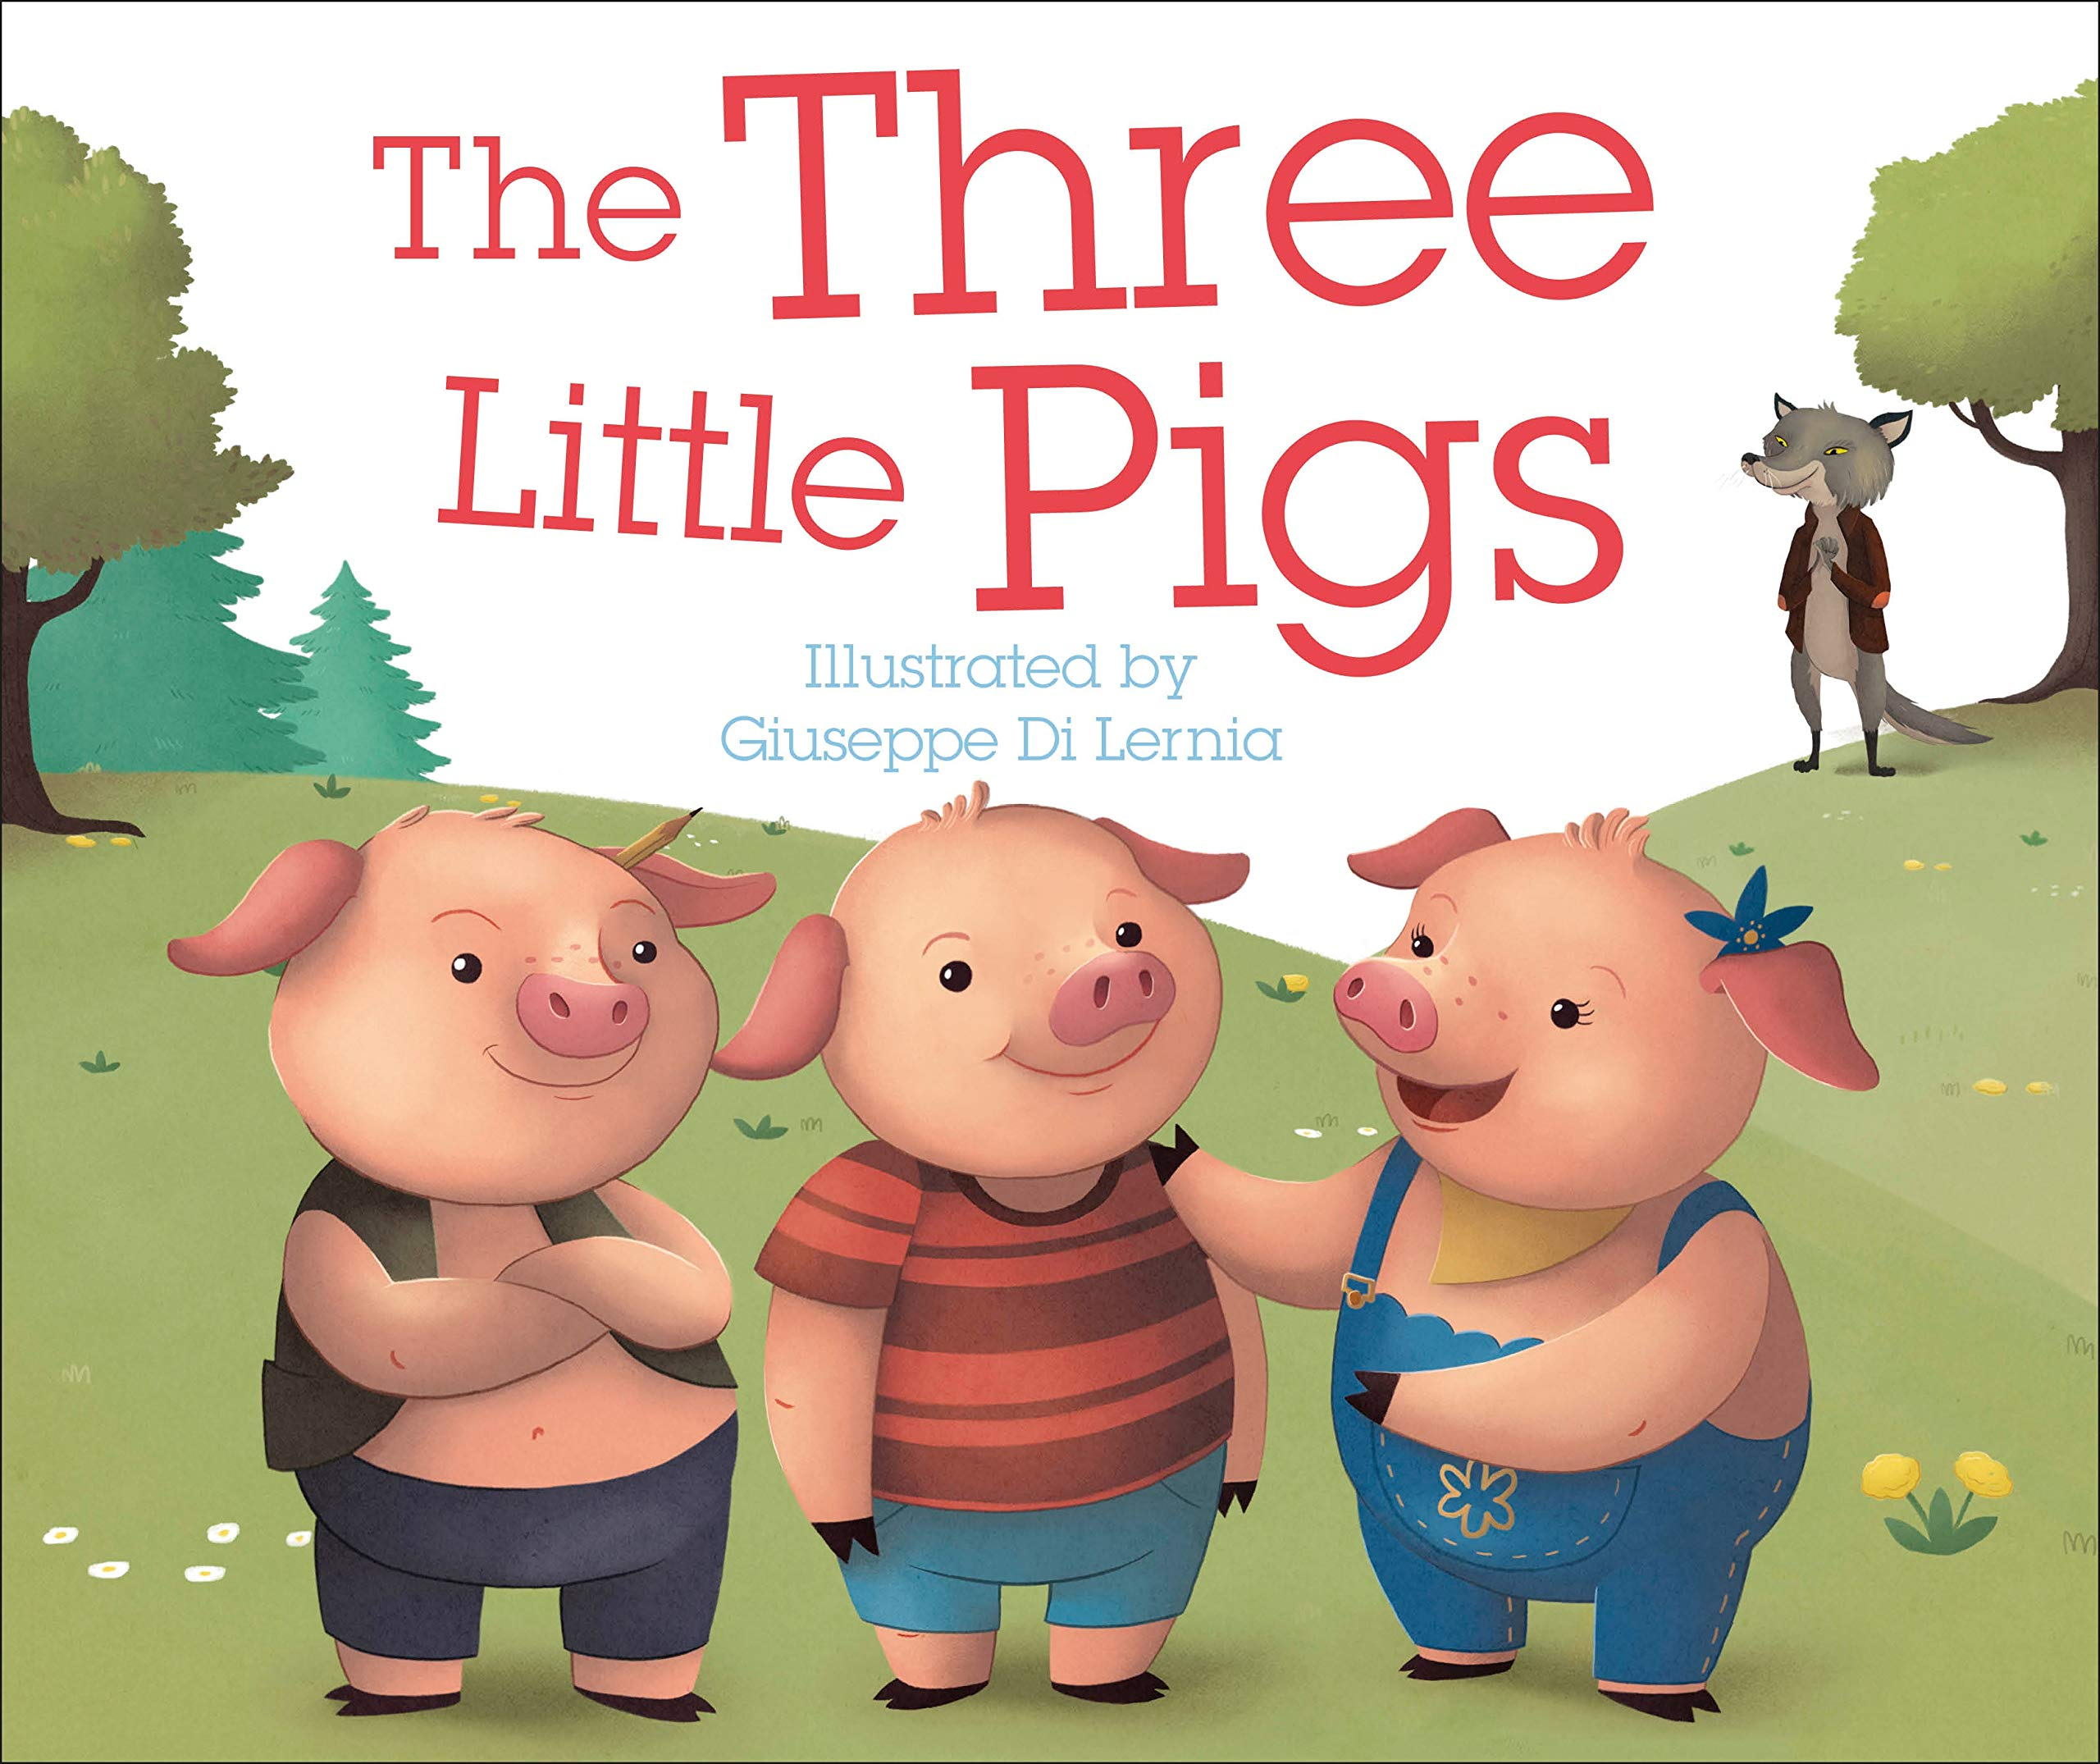 The Three Little Pigs: Amazon.co.uk: DK: 9781465478481: Books